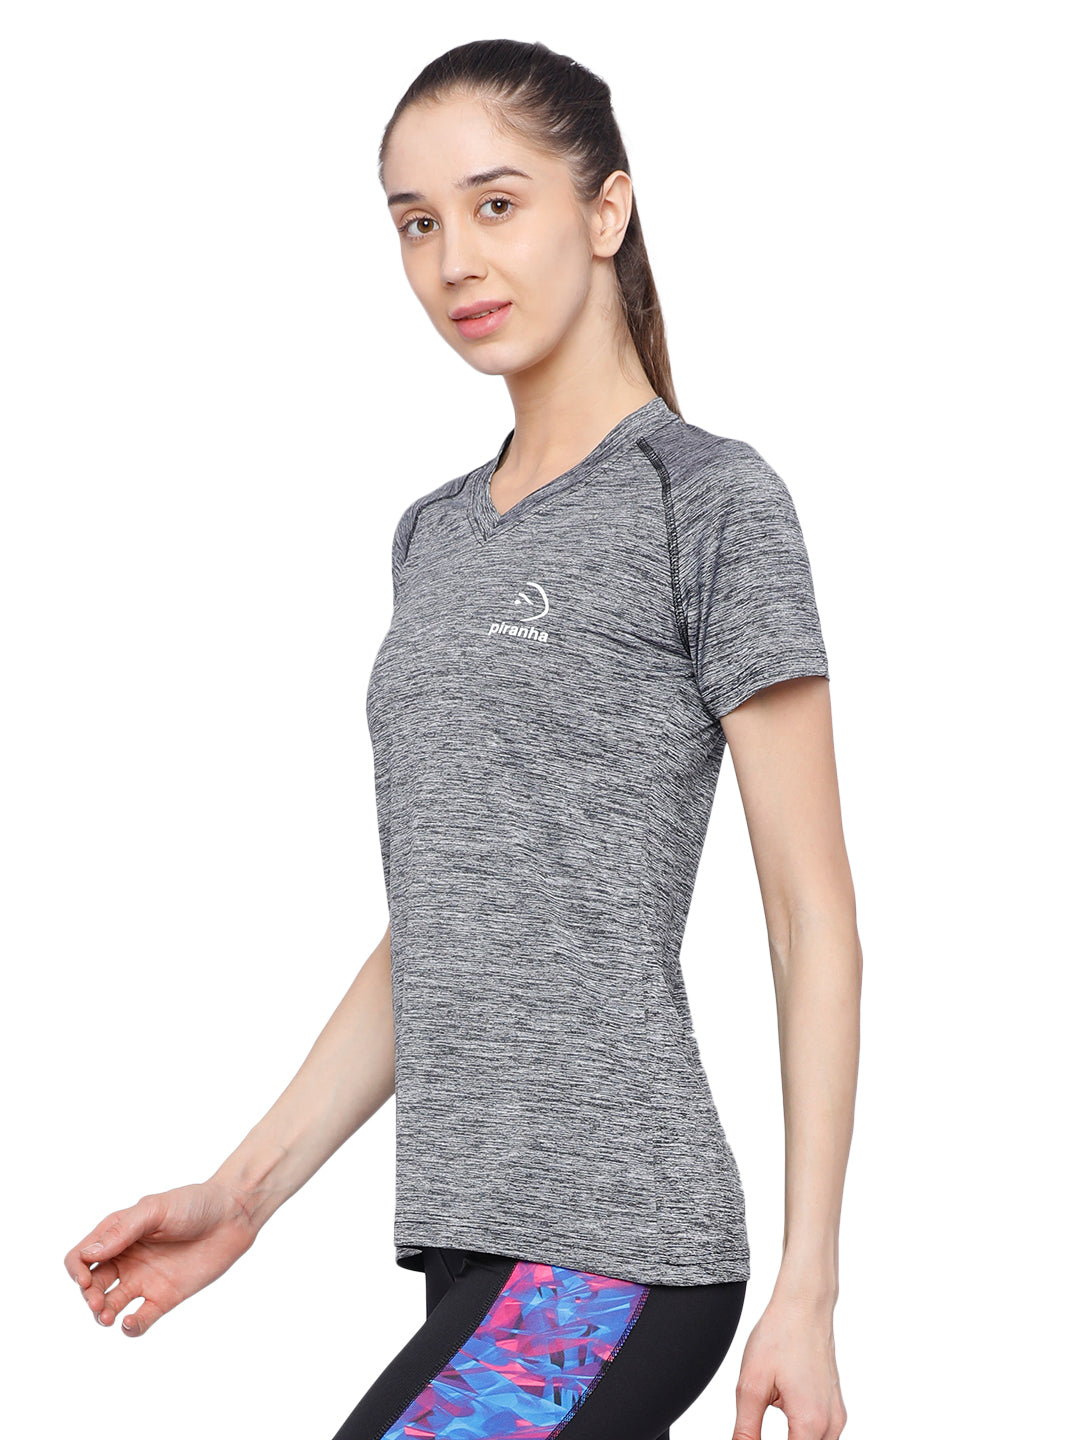 Piranha Women's Grey T-shirt - TSG191